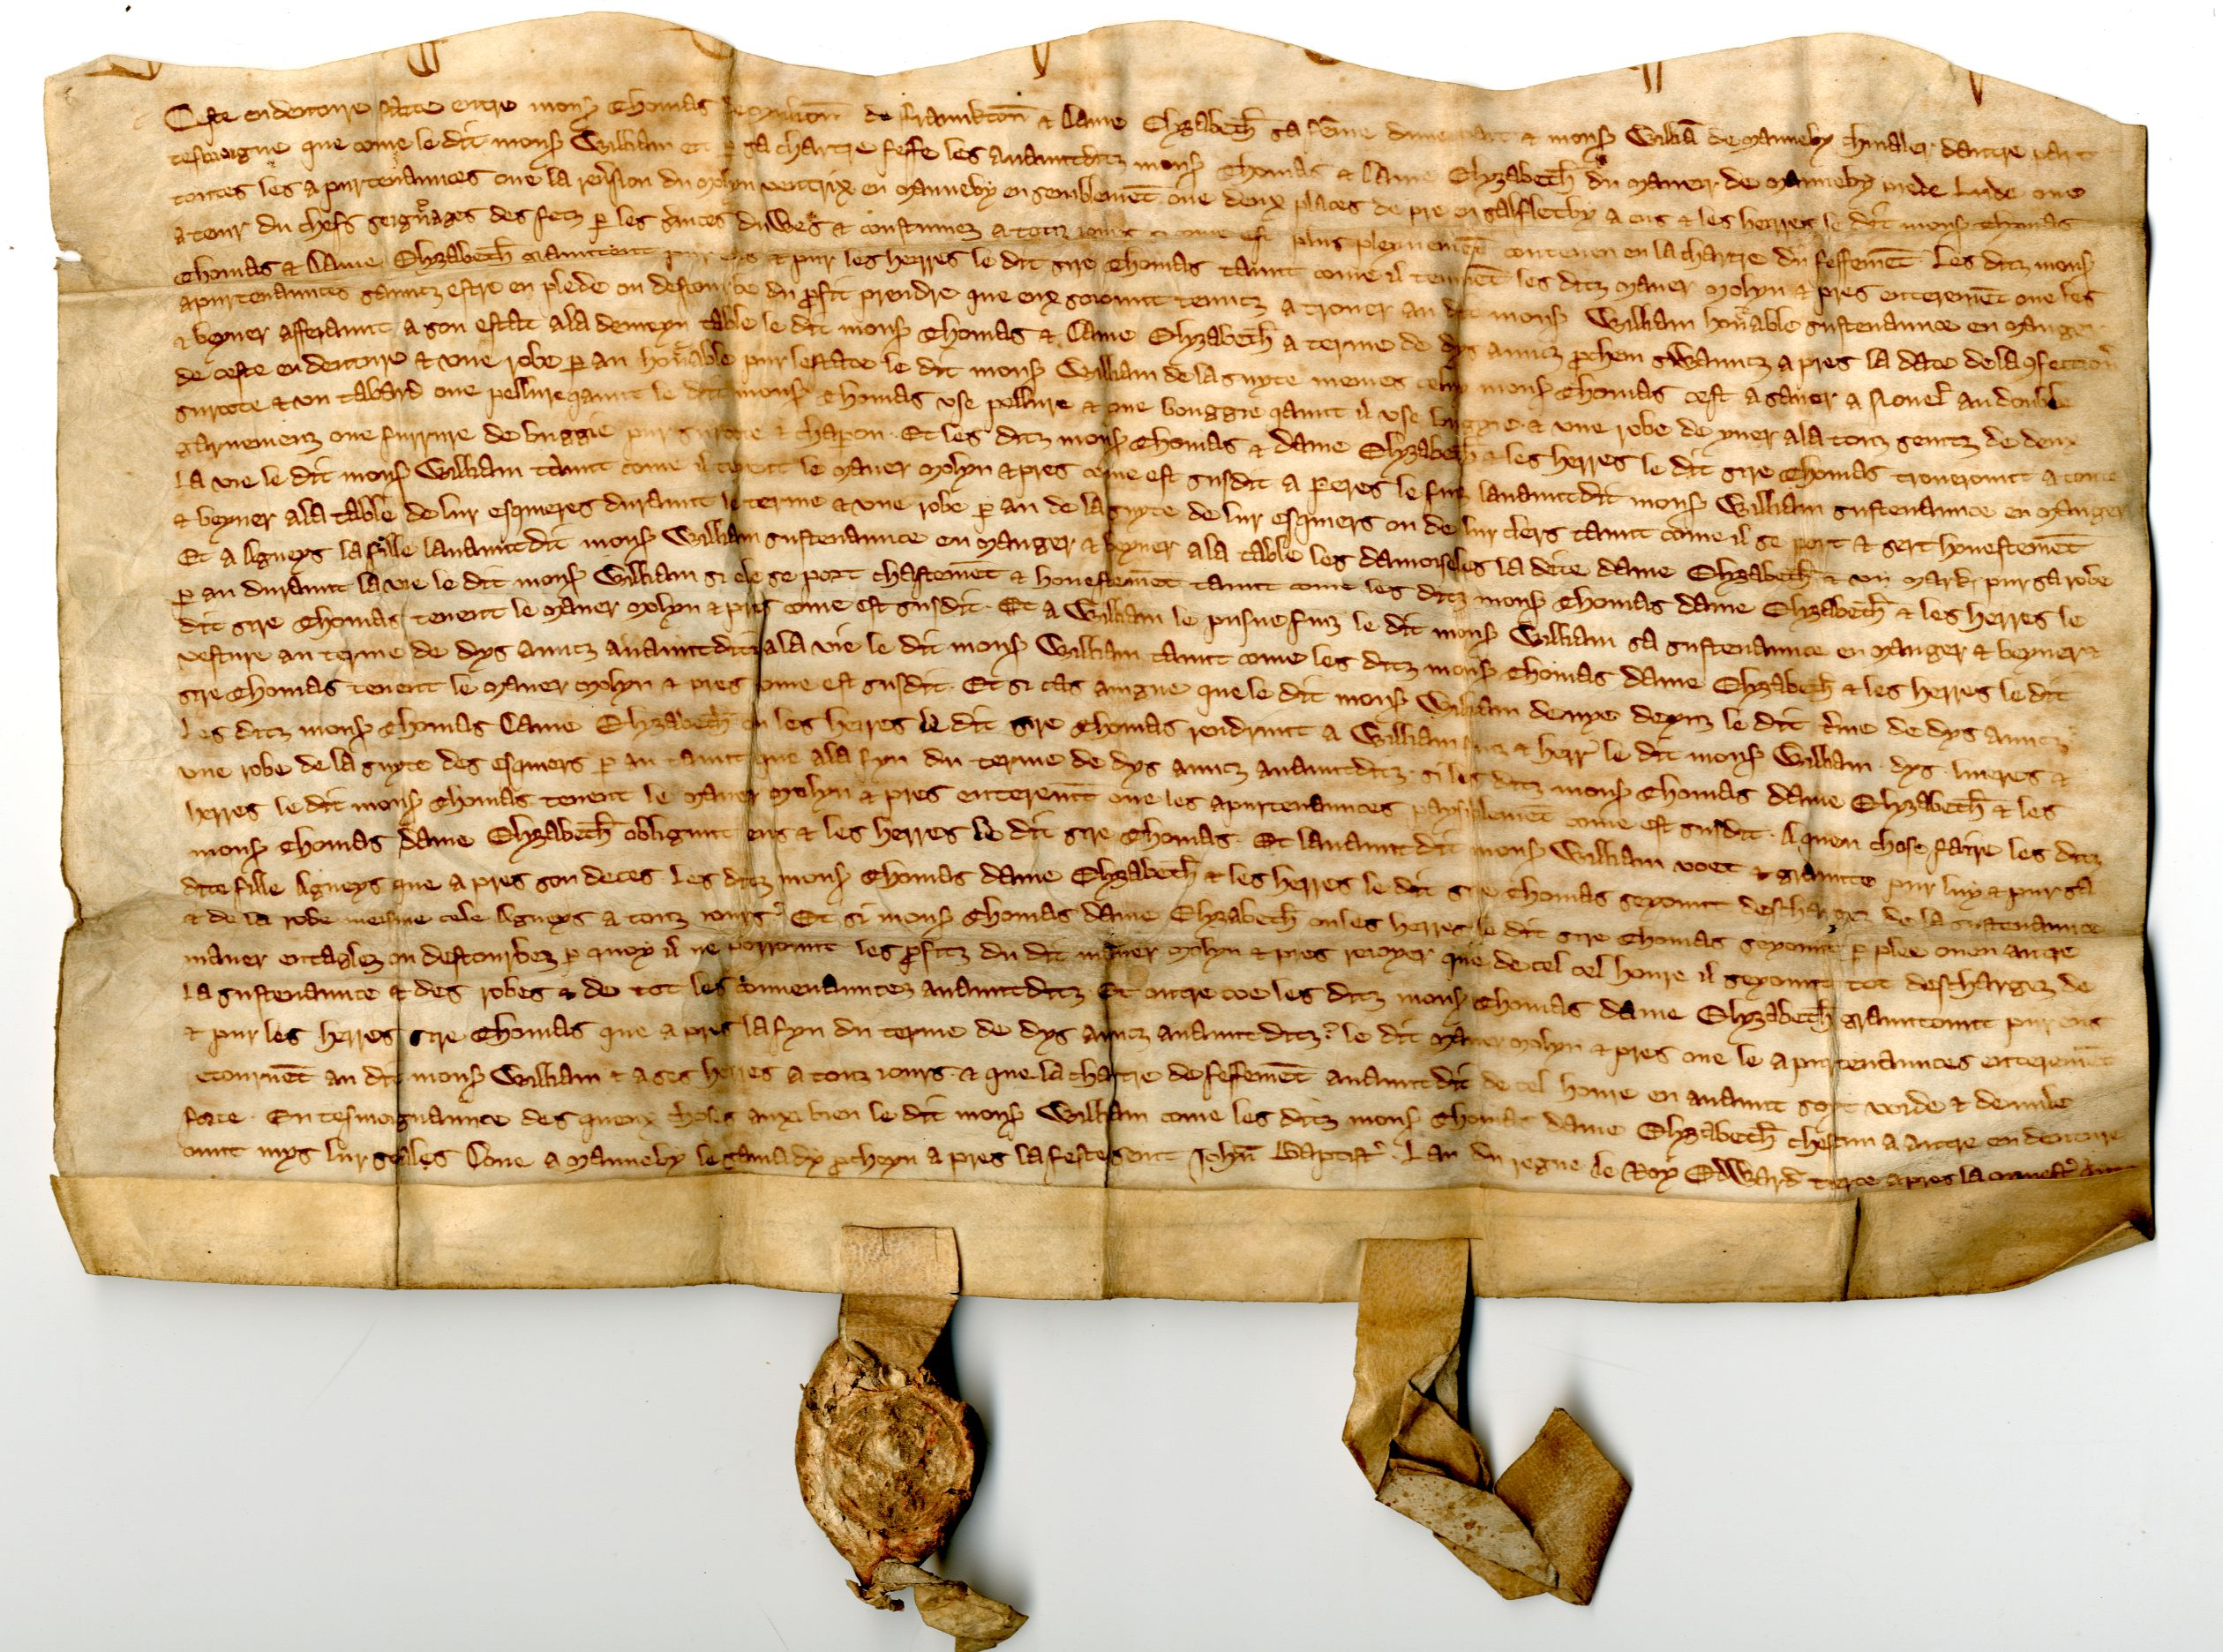 14th century indenture describing a Knight's livery